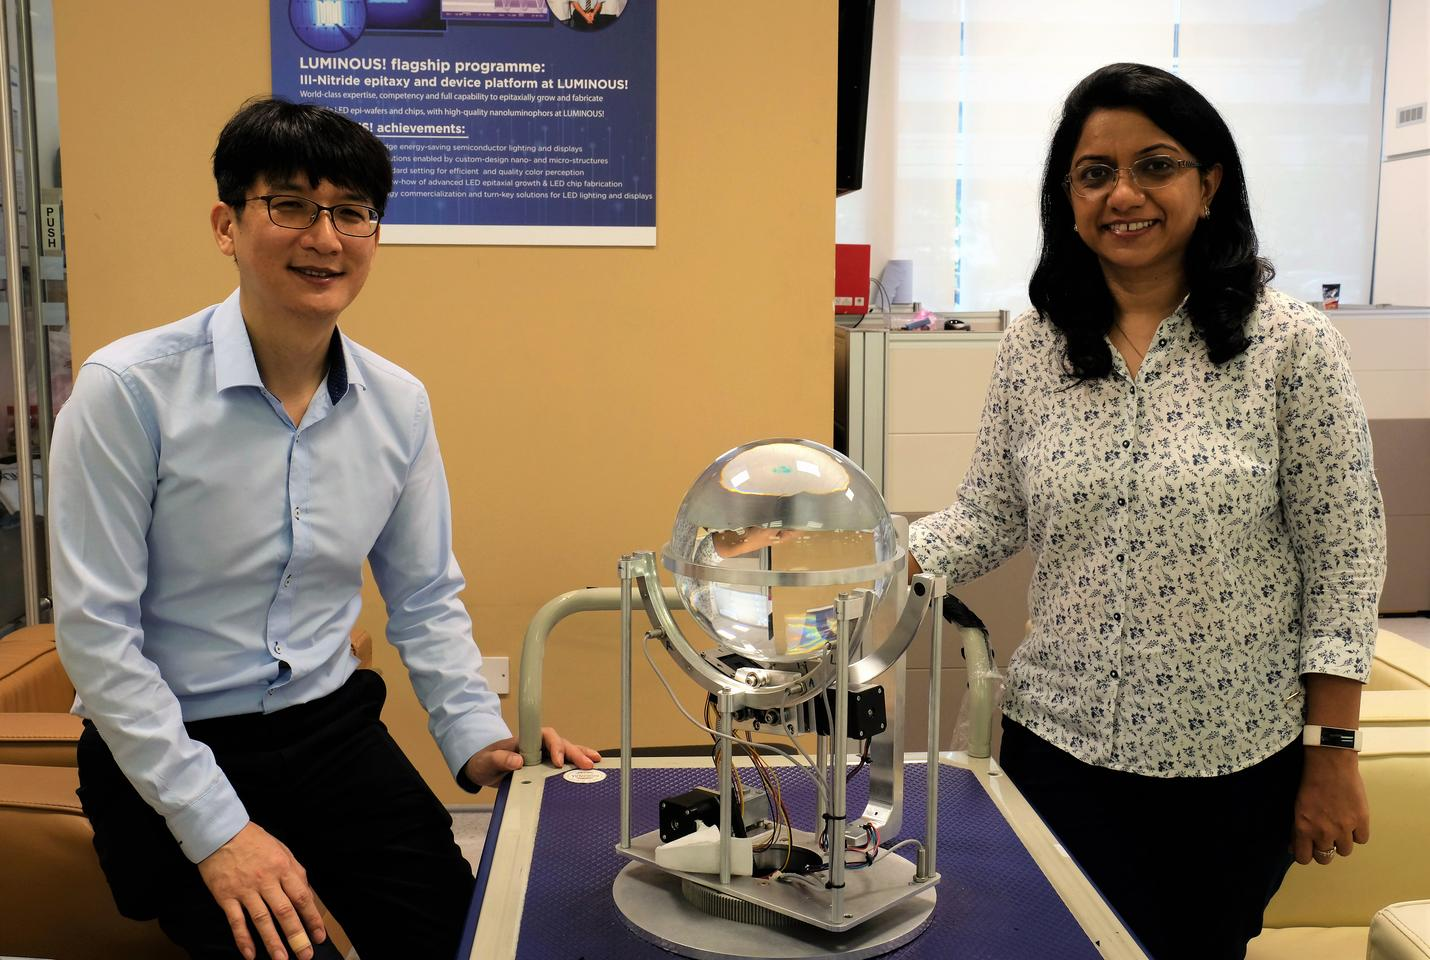 Asst. Prof. Yoo Seongwoo (left) and Dr. Charu Goel with the solar concentrator